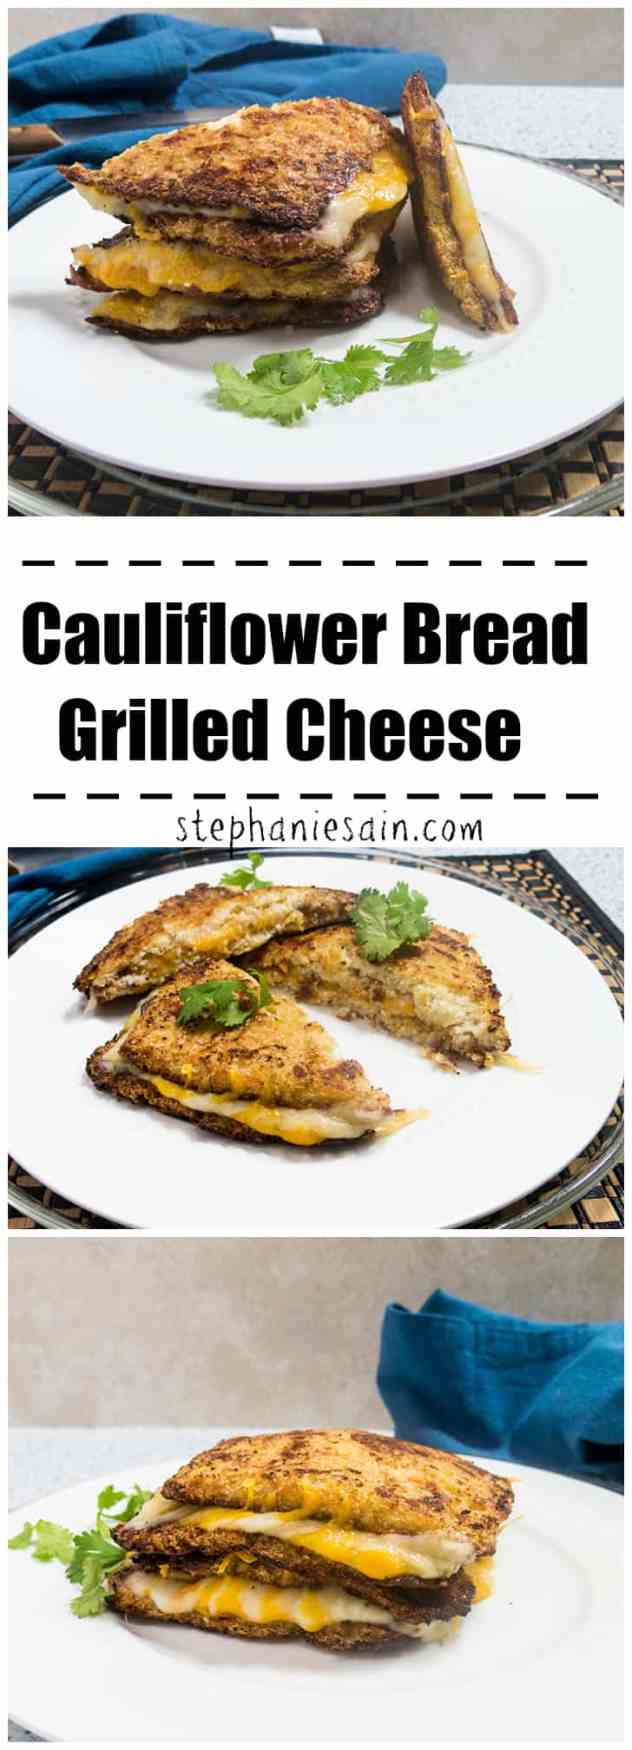 Cauliflower Bread Grilled Cheese is a tasty, healthy lower carb option for your favorite grilled cheese sandwich. Vegetarian and Gluten Free.